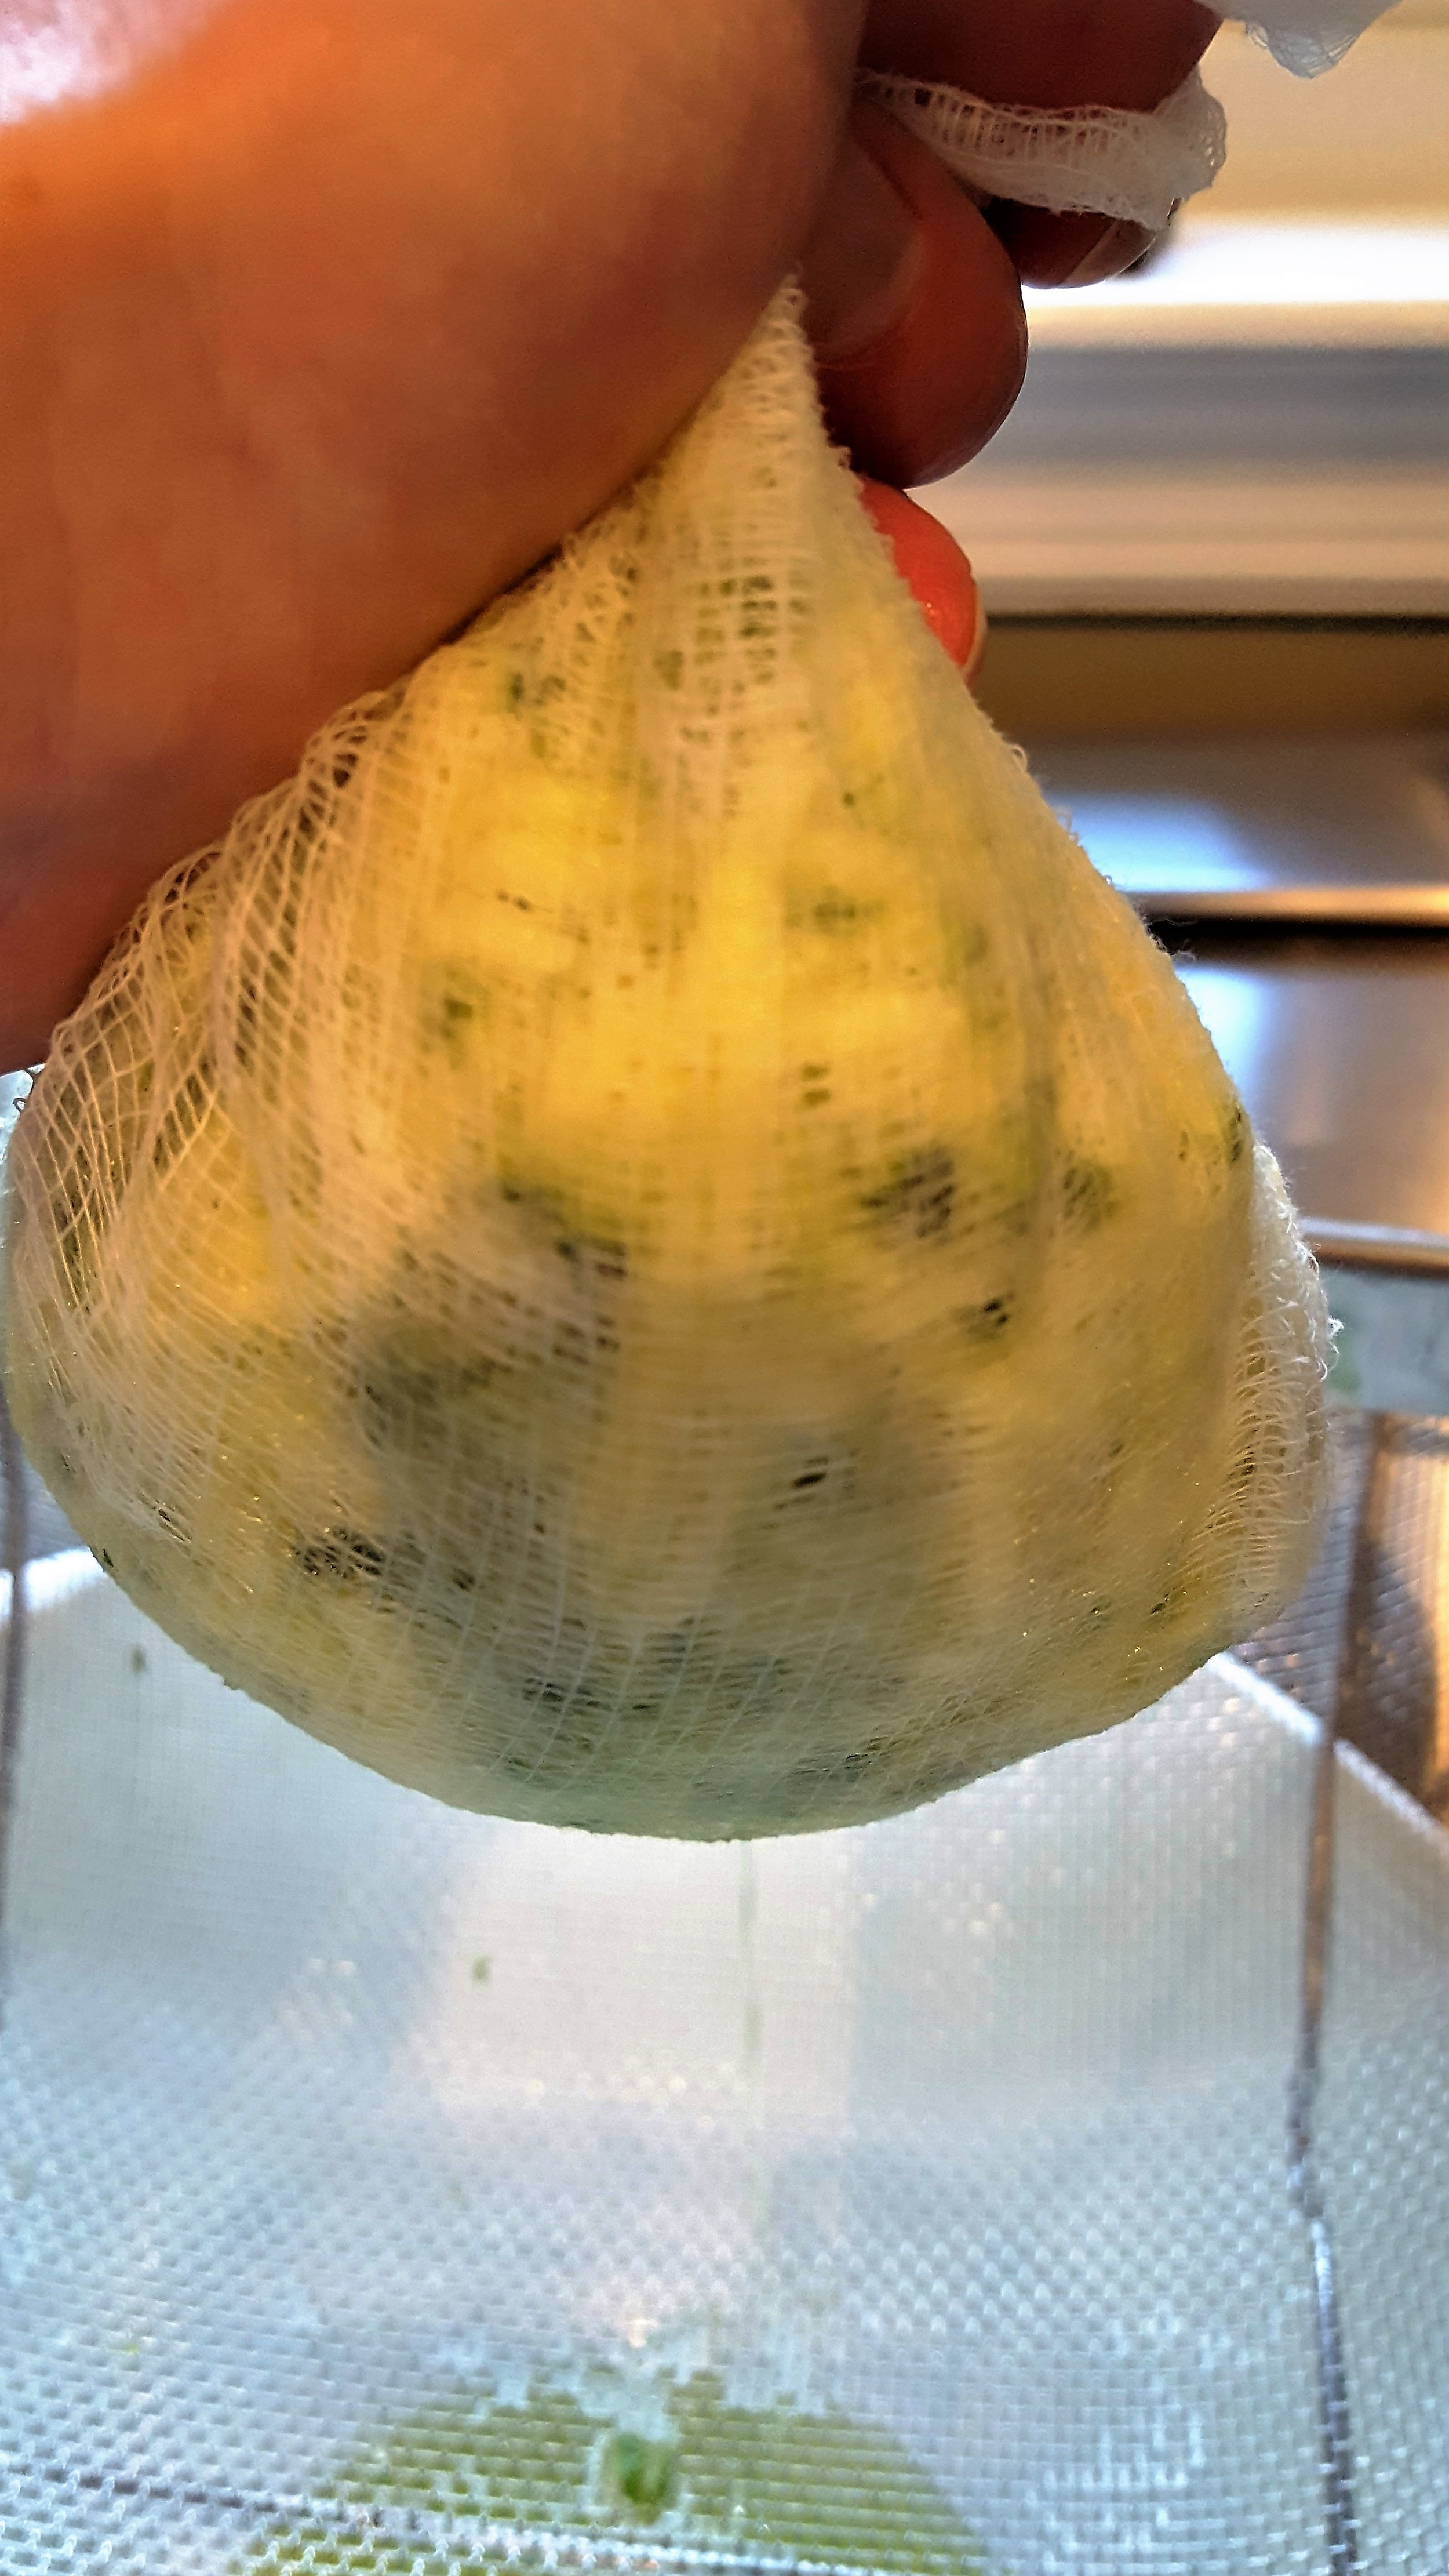 Wrap zucchini in cheese cloth and squeeze.